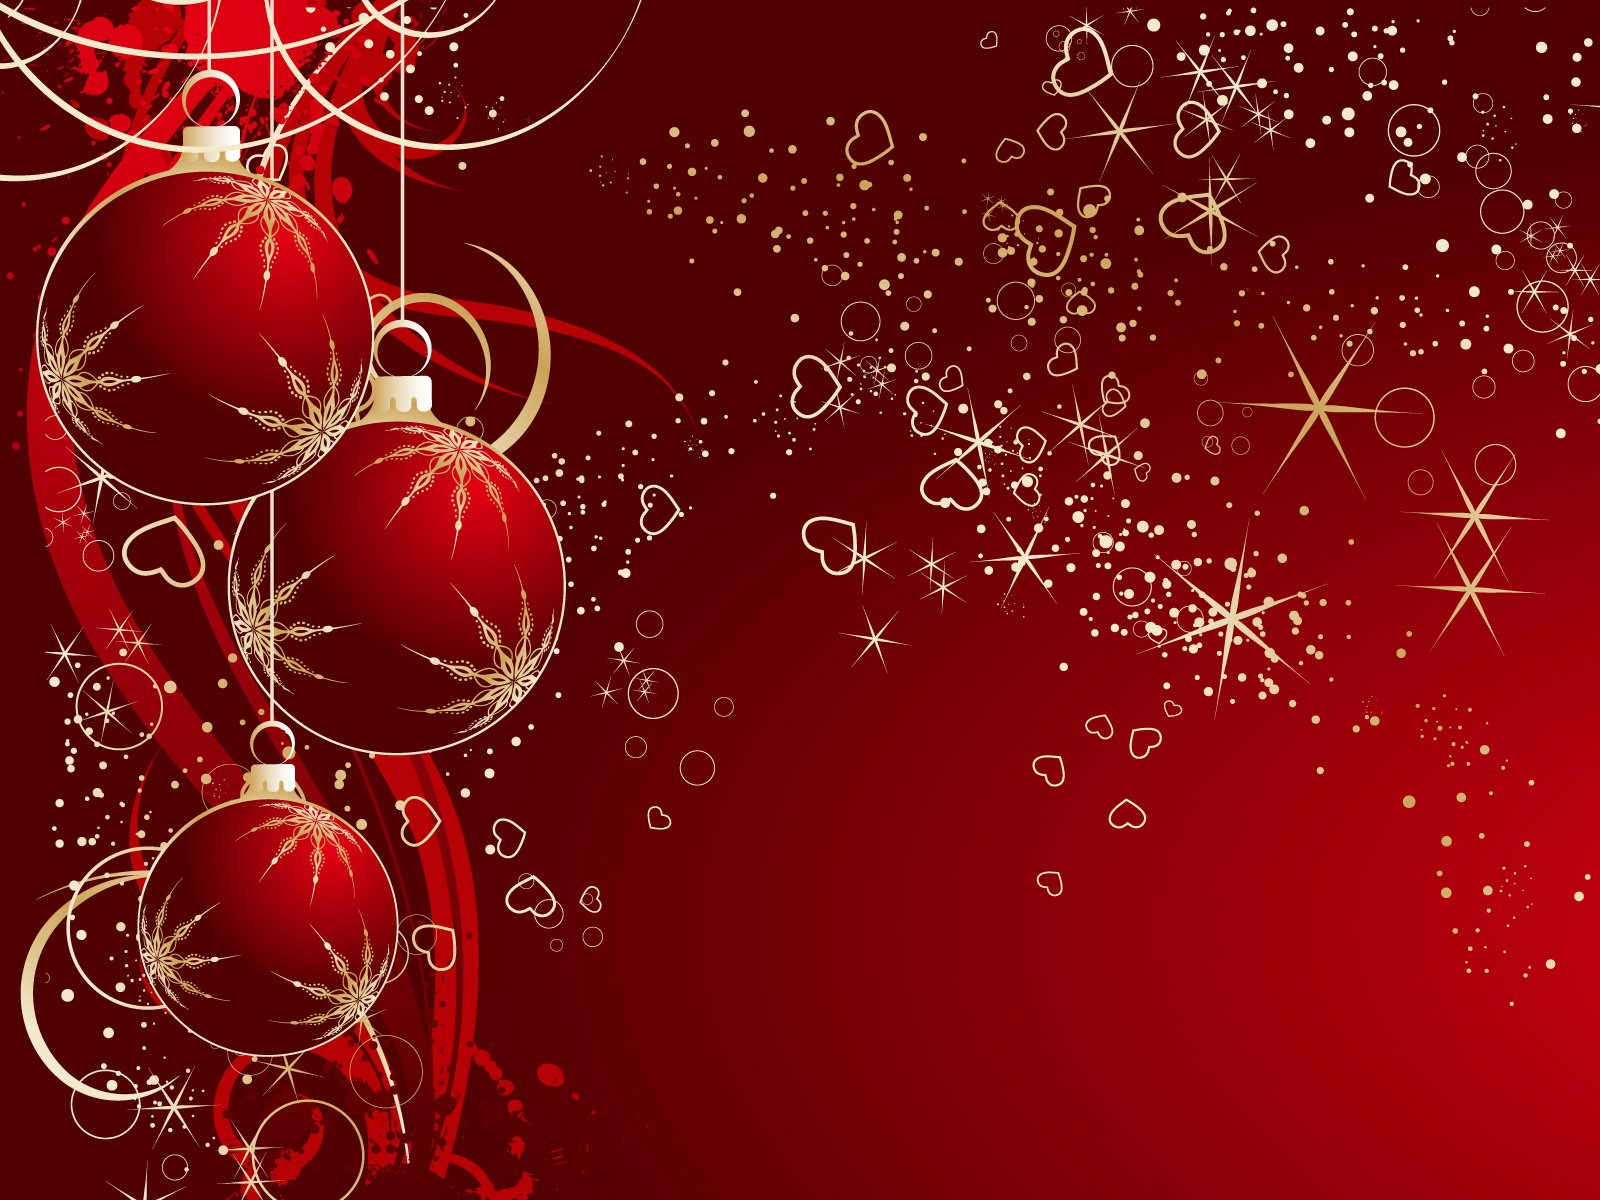 christmas wallpaper download merry - photo #36